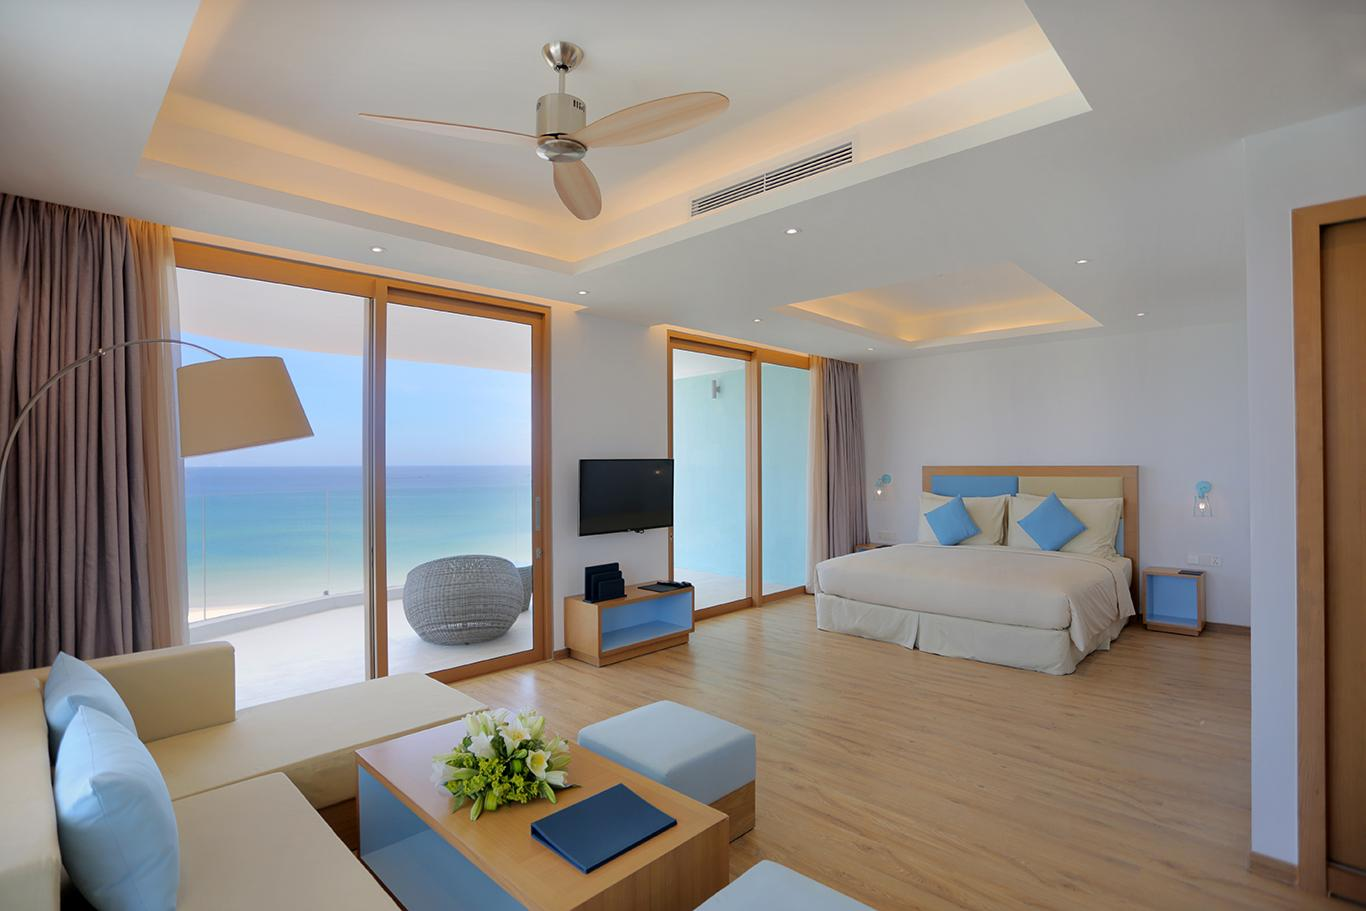 Room at FLC Luxury Hotel Quy Nhon